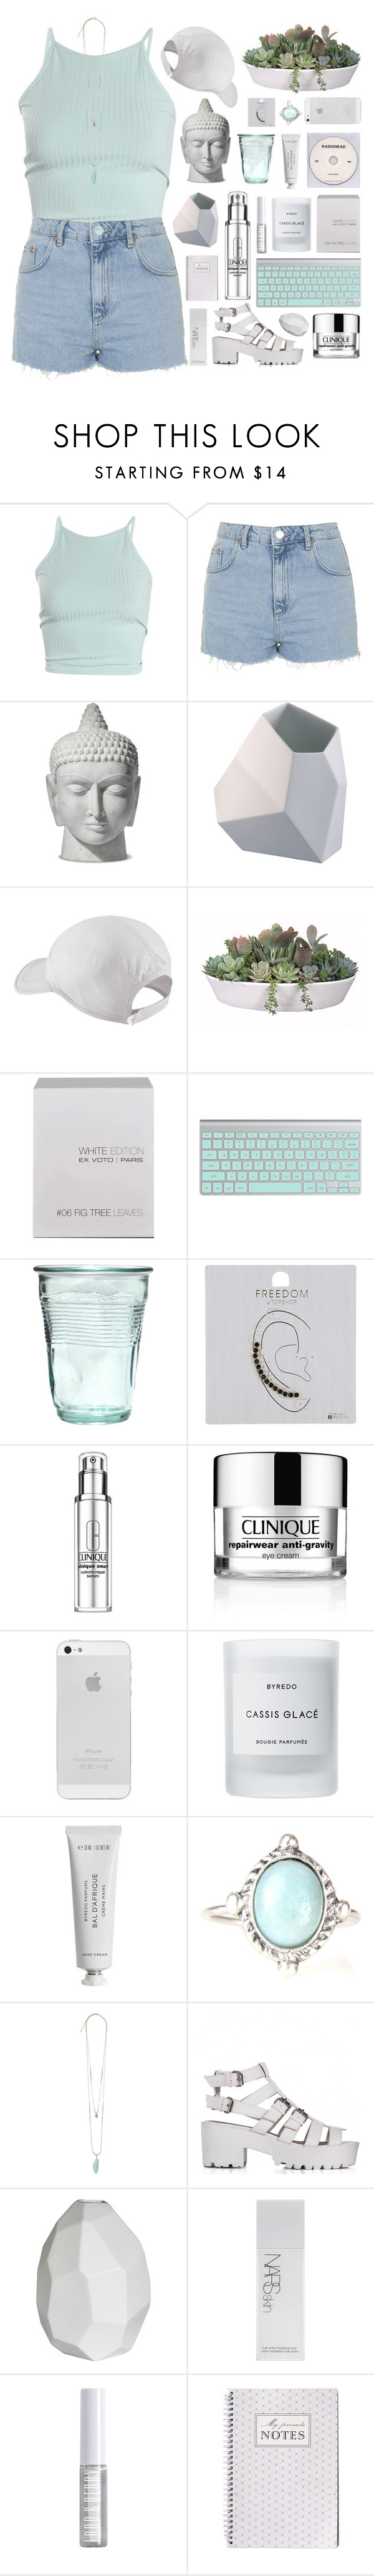 """""""WORK SONG // HOZIER"""" by alkalicaroline ❤ liked on Polyvore featuring Topshop, Rosenthal, KEEP ME, NIKE, VesseL, Ex Voto Paris, Clinique, Byredo, CB2 and NARS Cosmetics"""